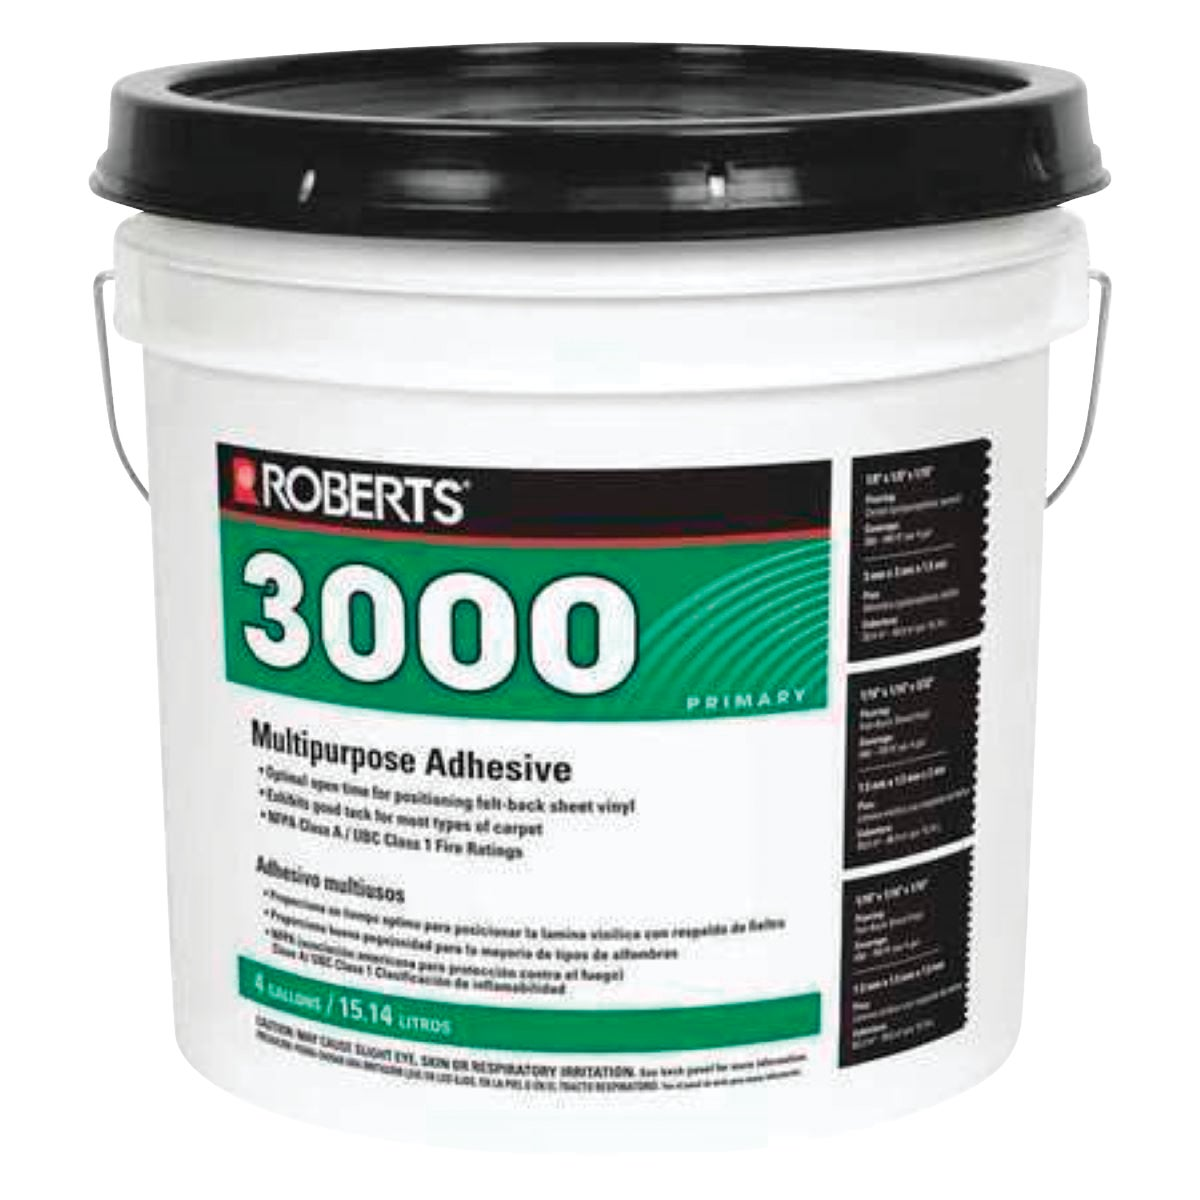 4GAL MULTI-PURP ADHESIVE - 3000-4 by Qep Co Inc Roberts